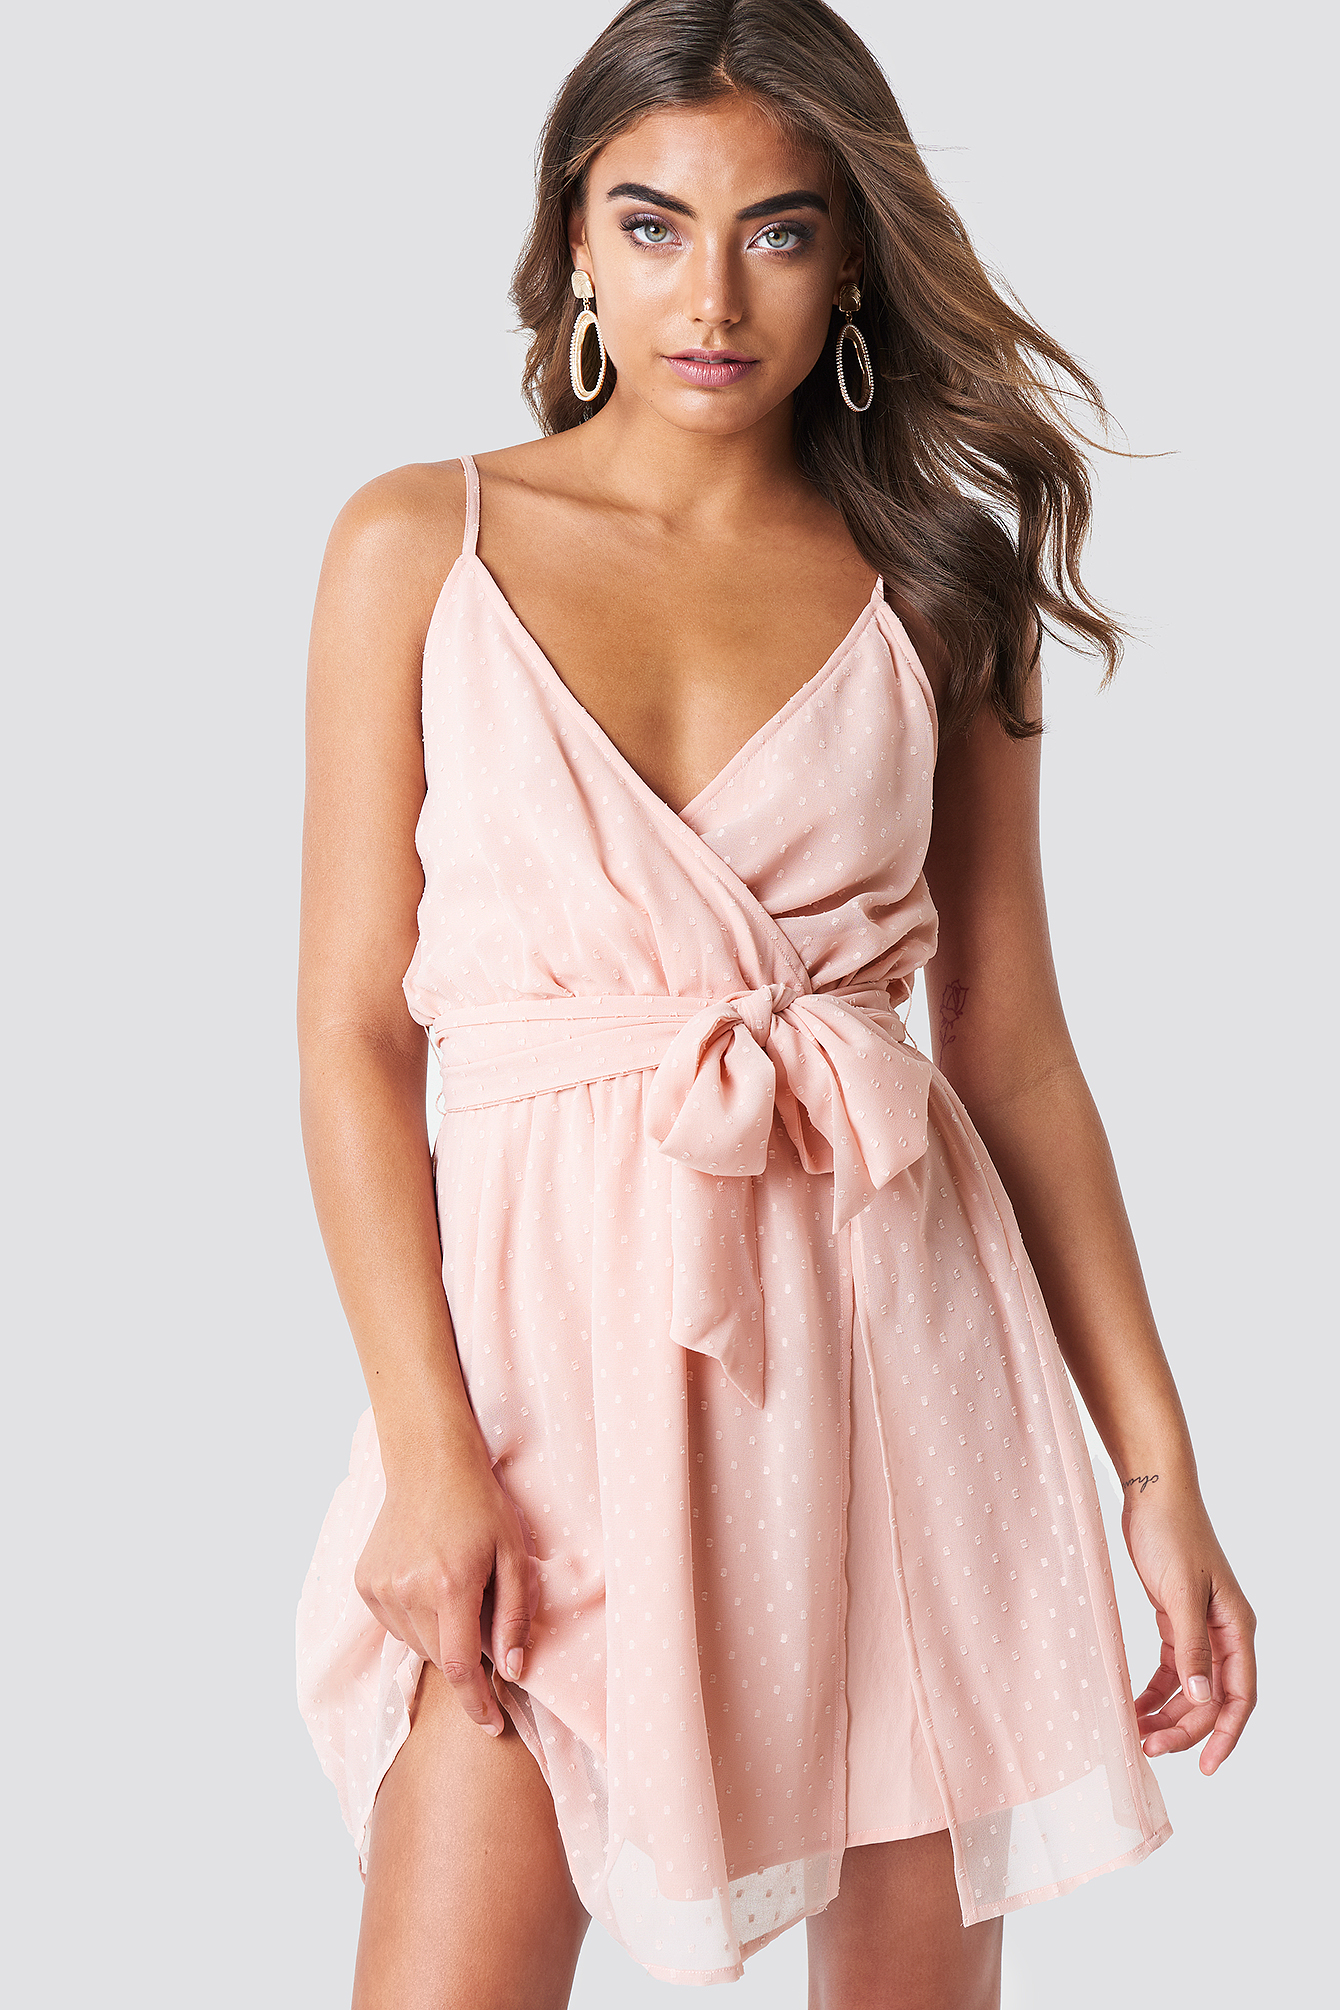 Rose Light Na Dress Short Pink Chiffon 4zqPB7wzx